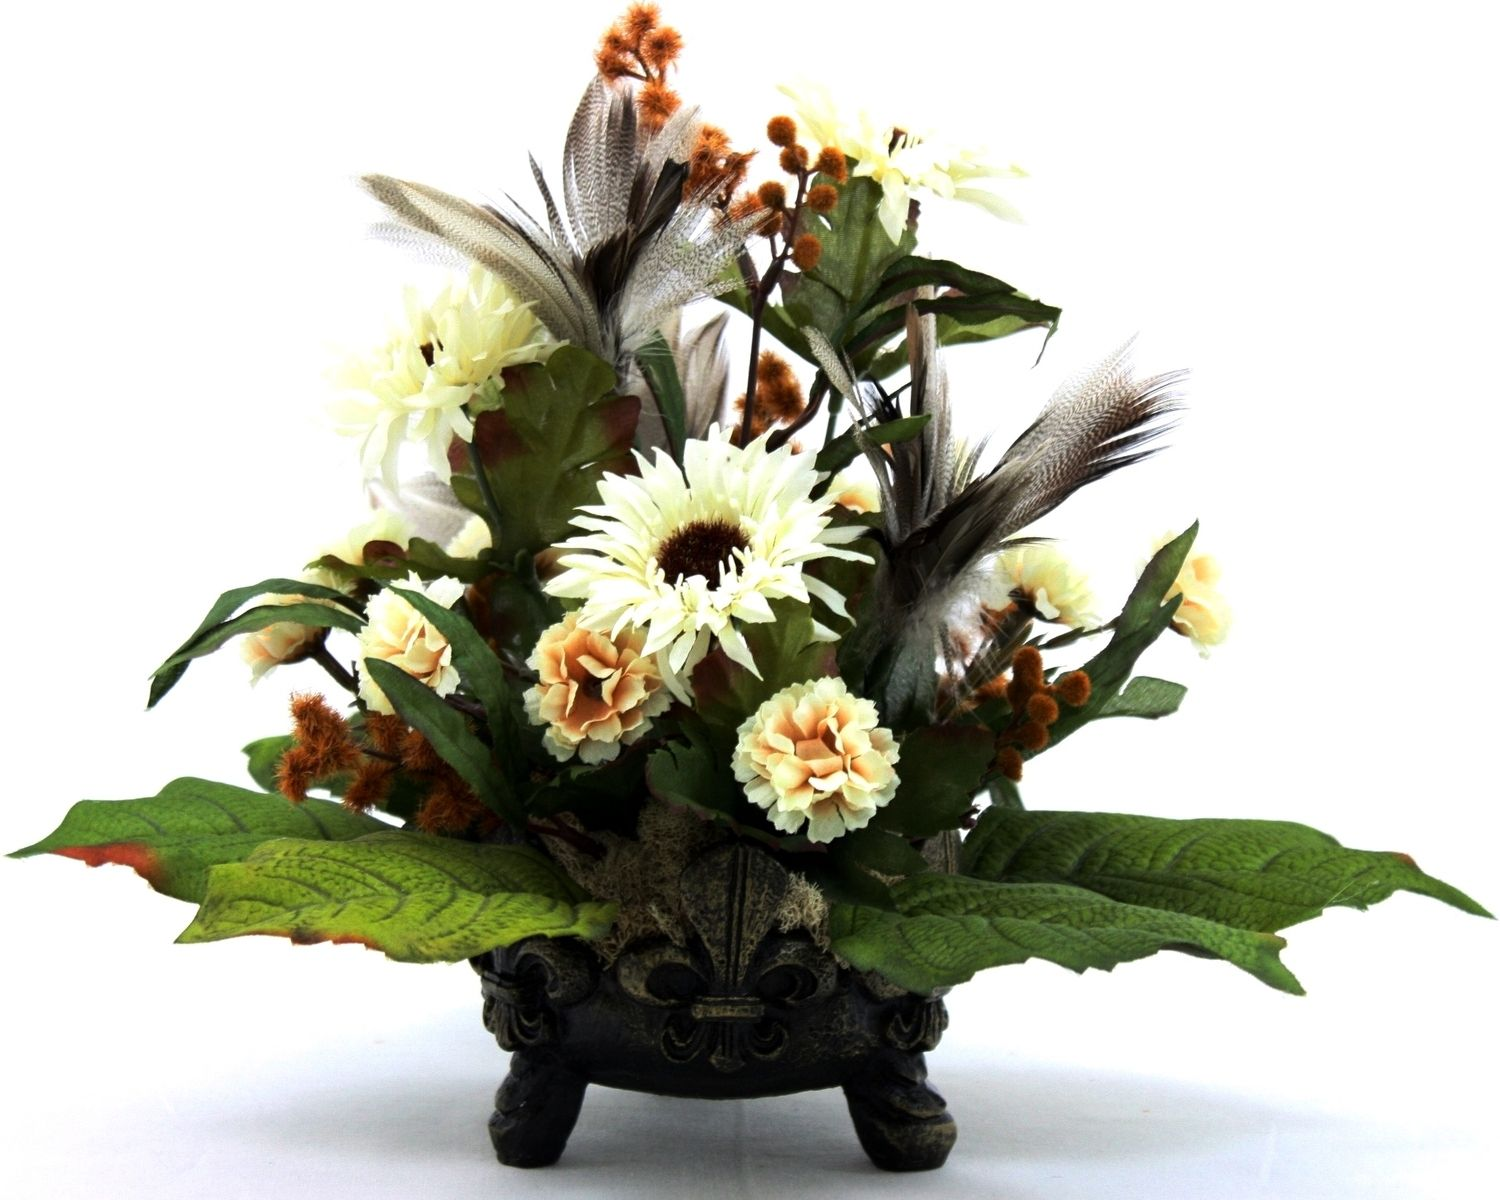 Hand Crafted Unique Silk Flower Arrangement Table Centerpiece Home